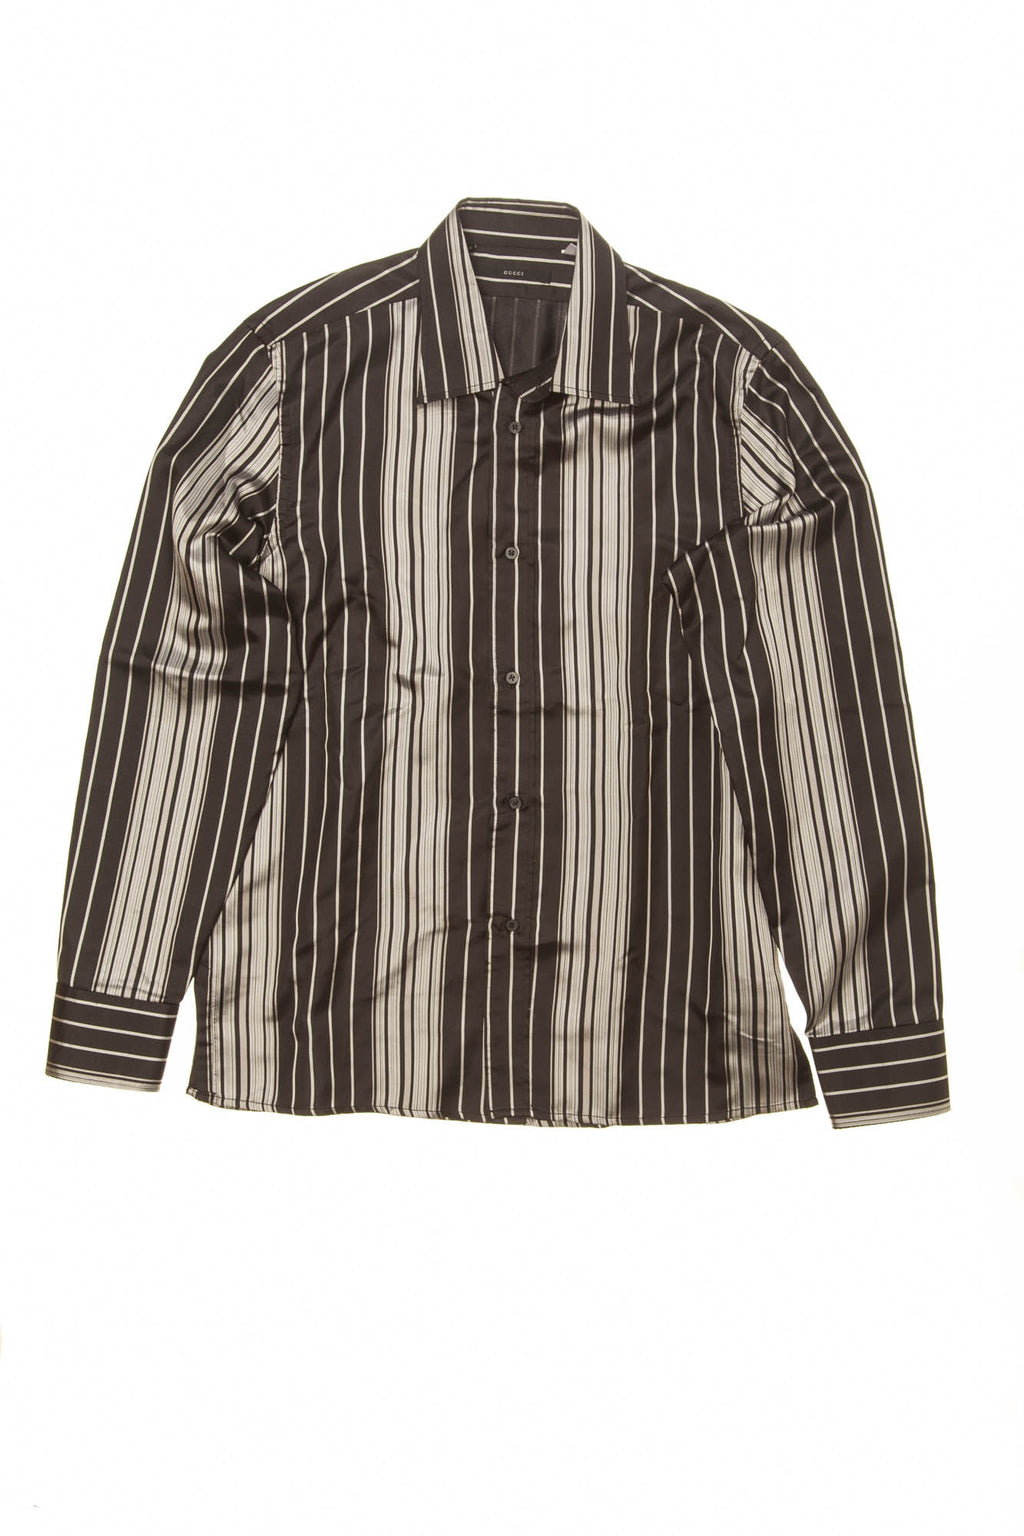 Gucci - Black and Silver Striped Button Down - 16 1/2